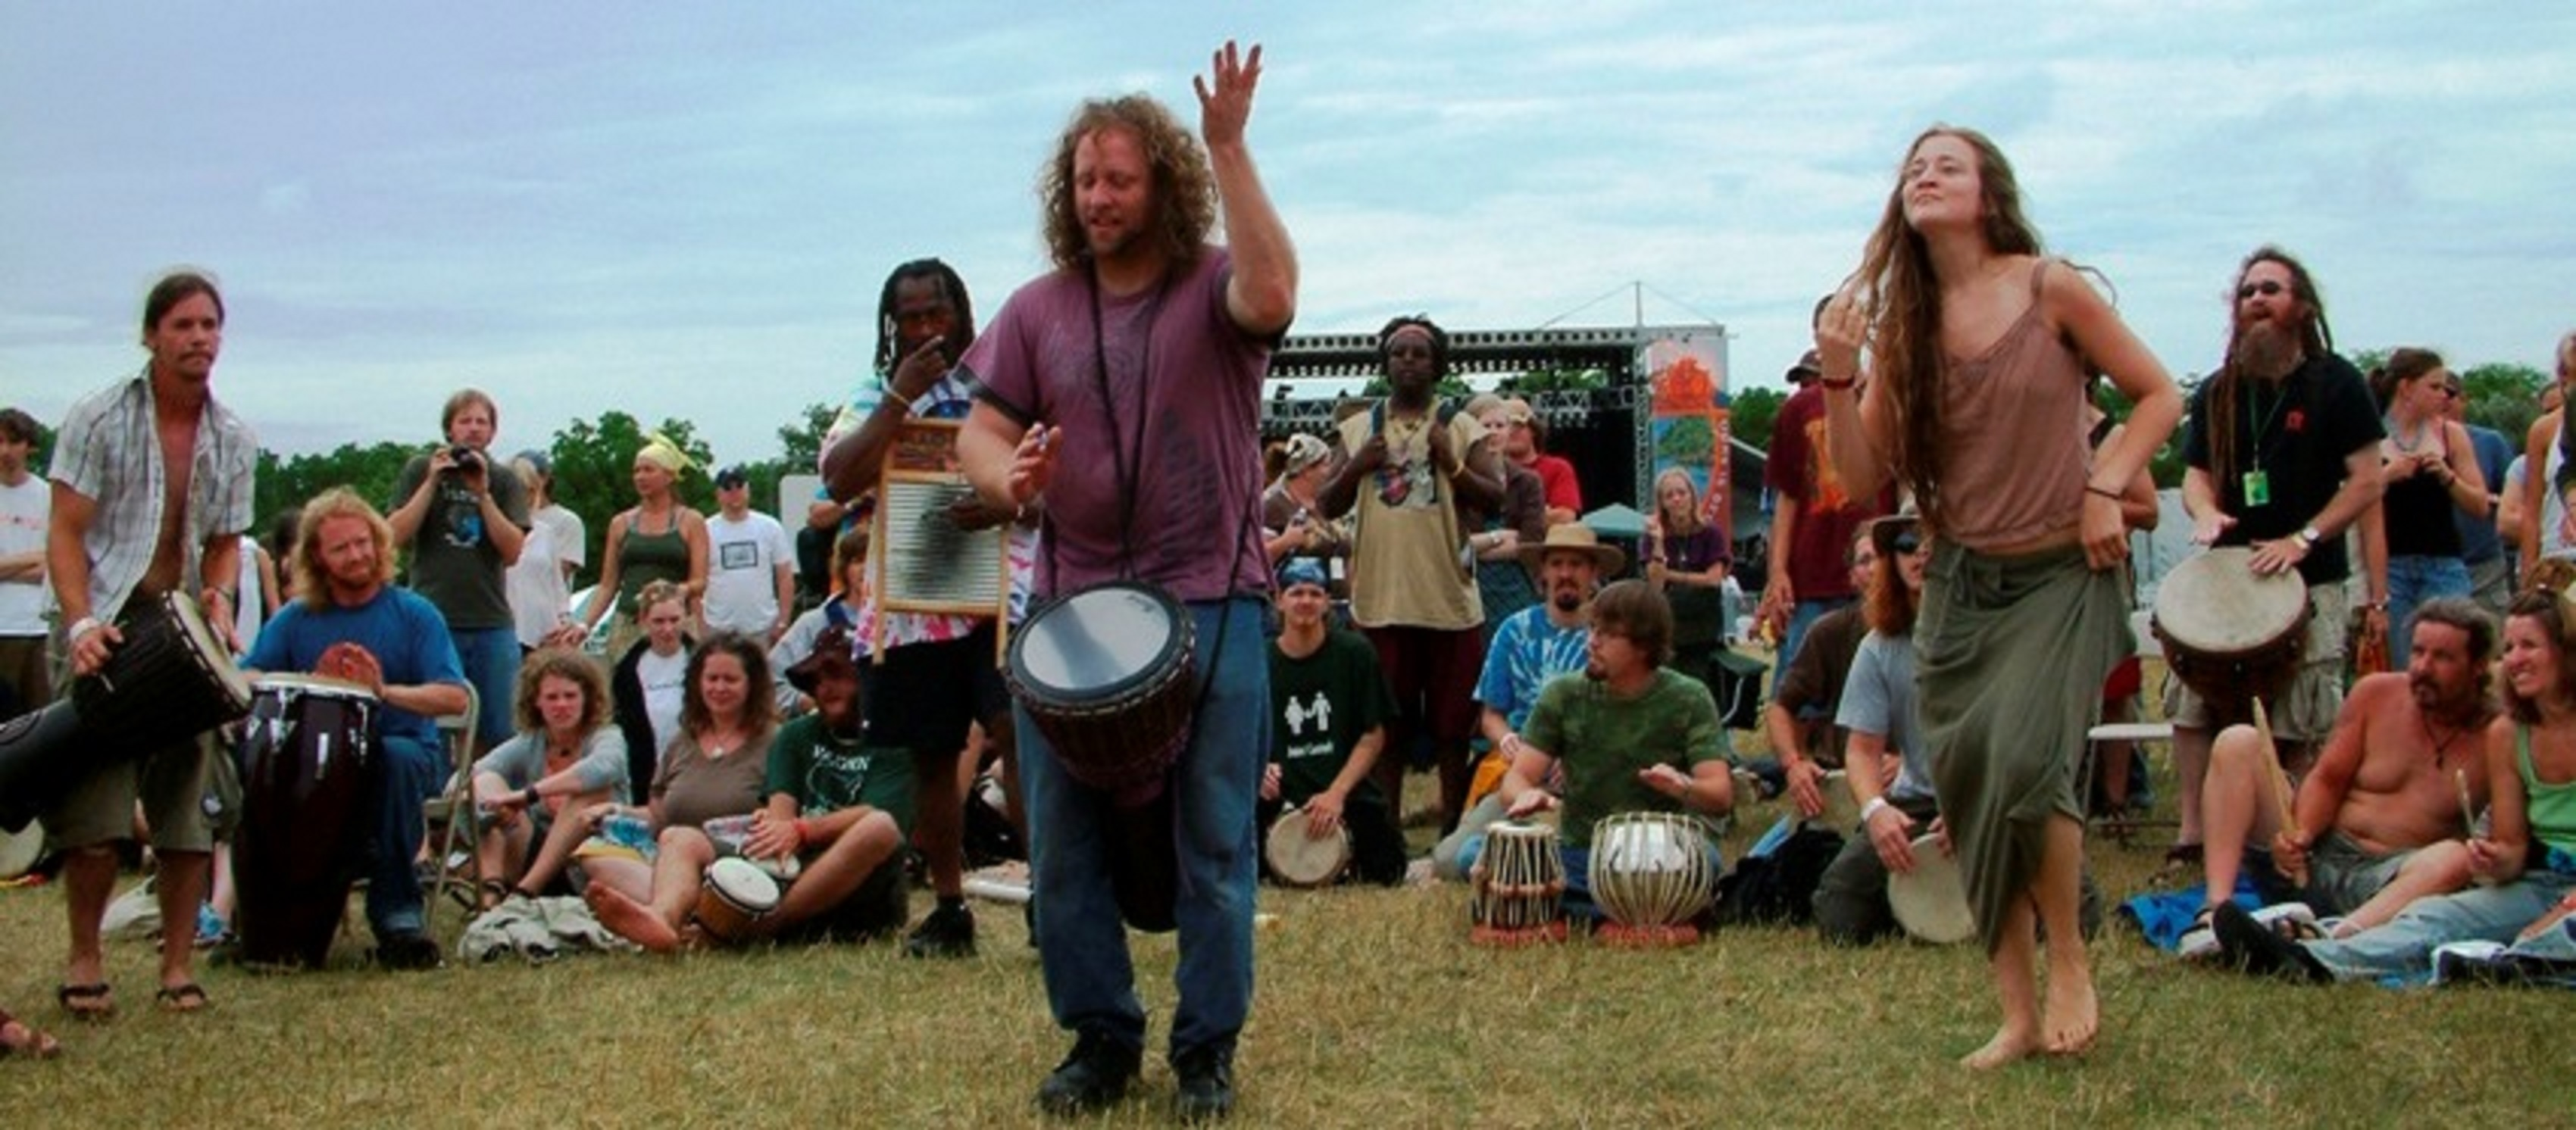 Wakarusa 2007: Part IV